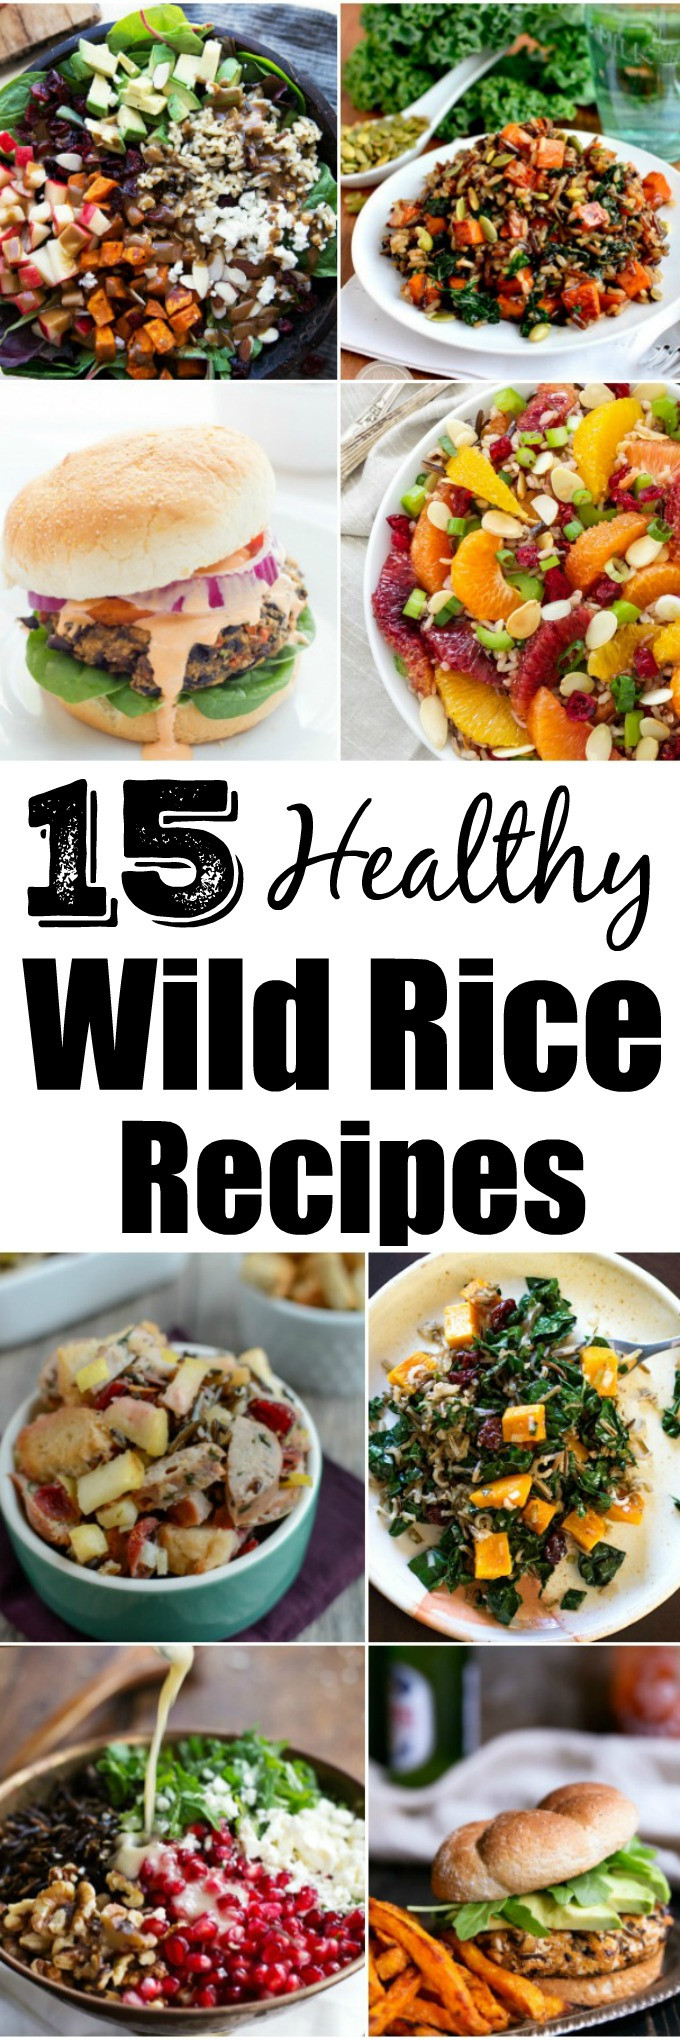 Is Wild Rice Healthy  15 Healthy Wild Rice Recipes